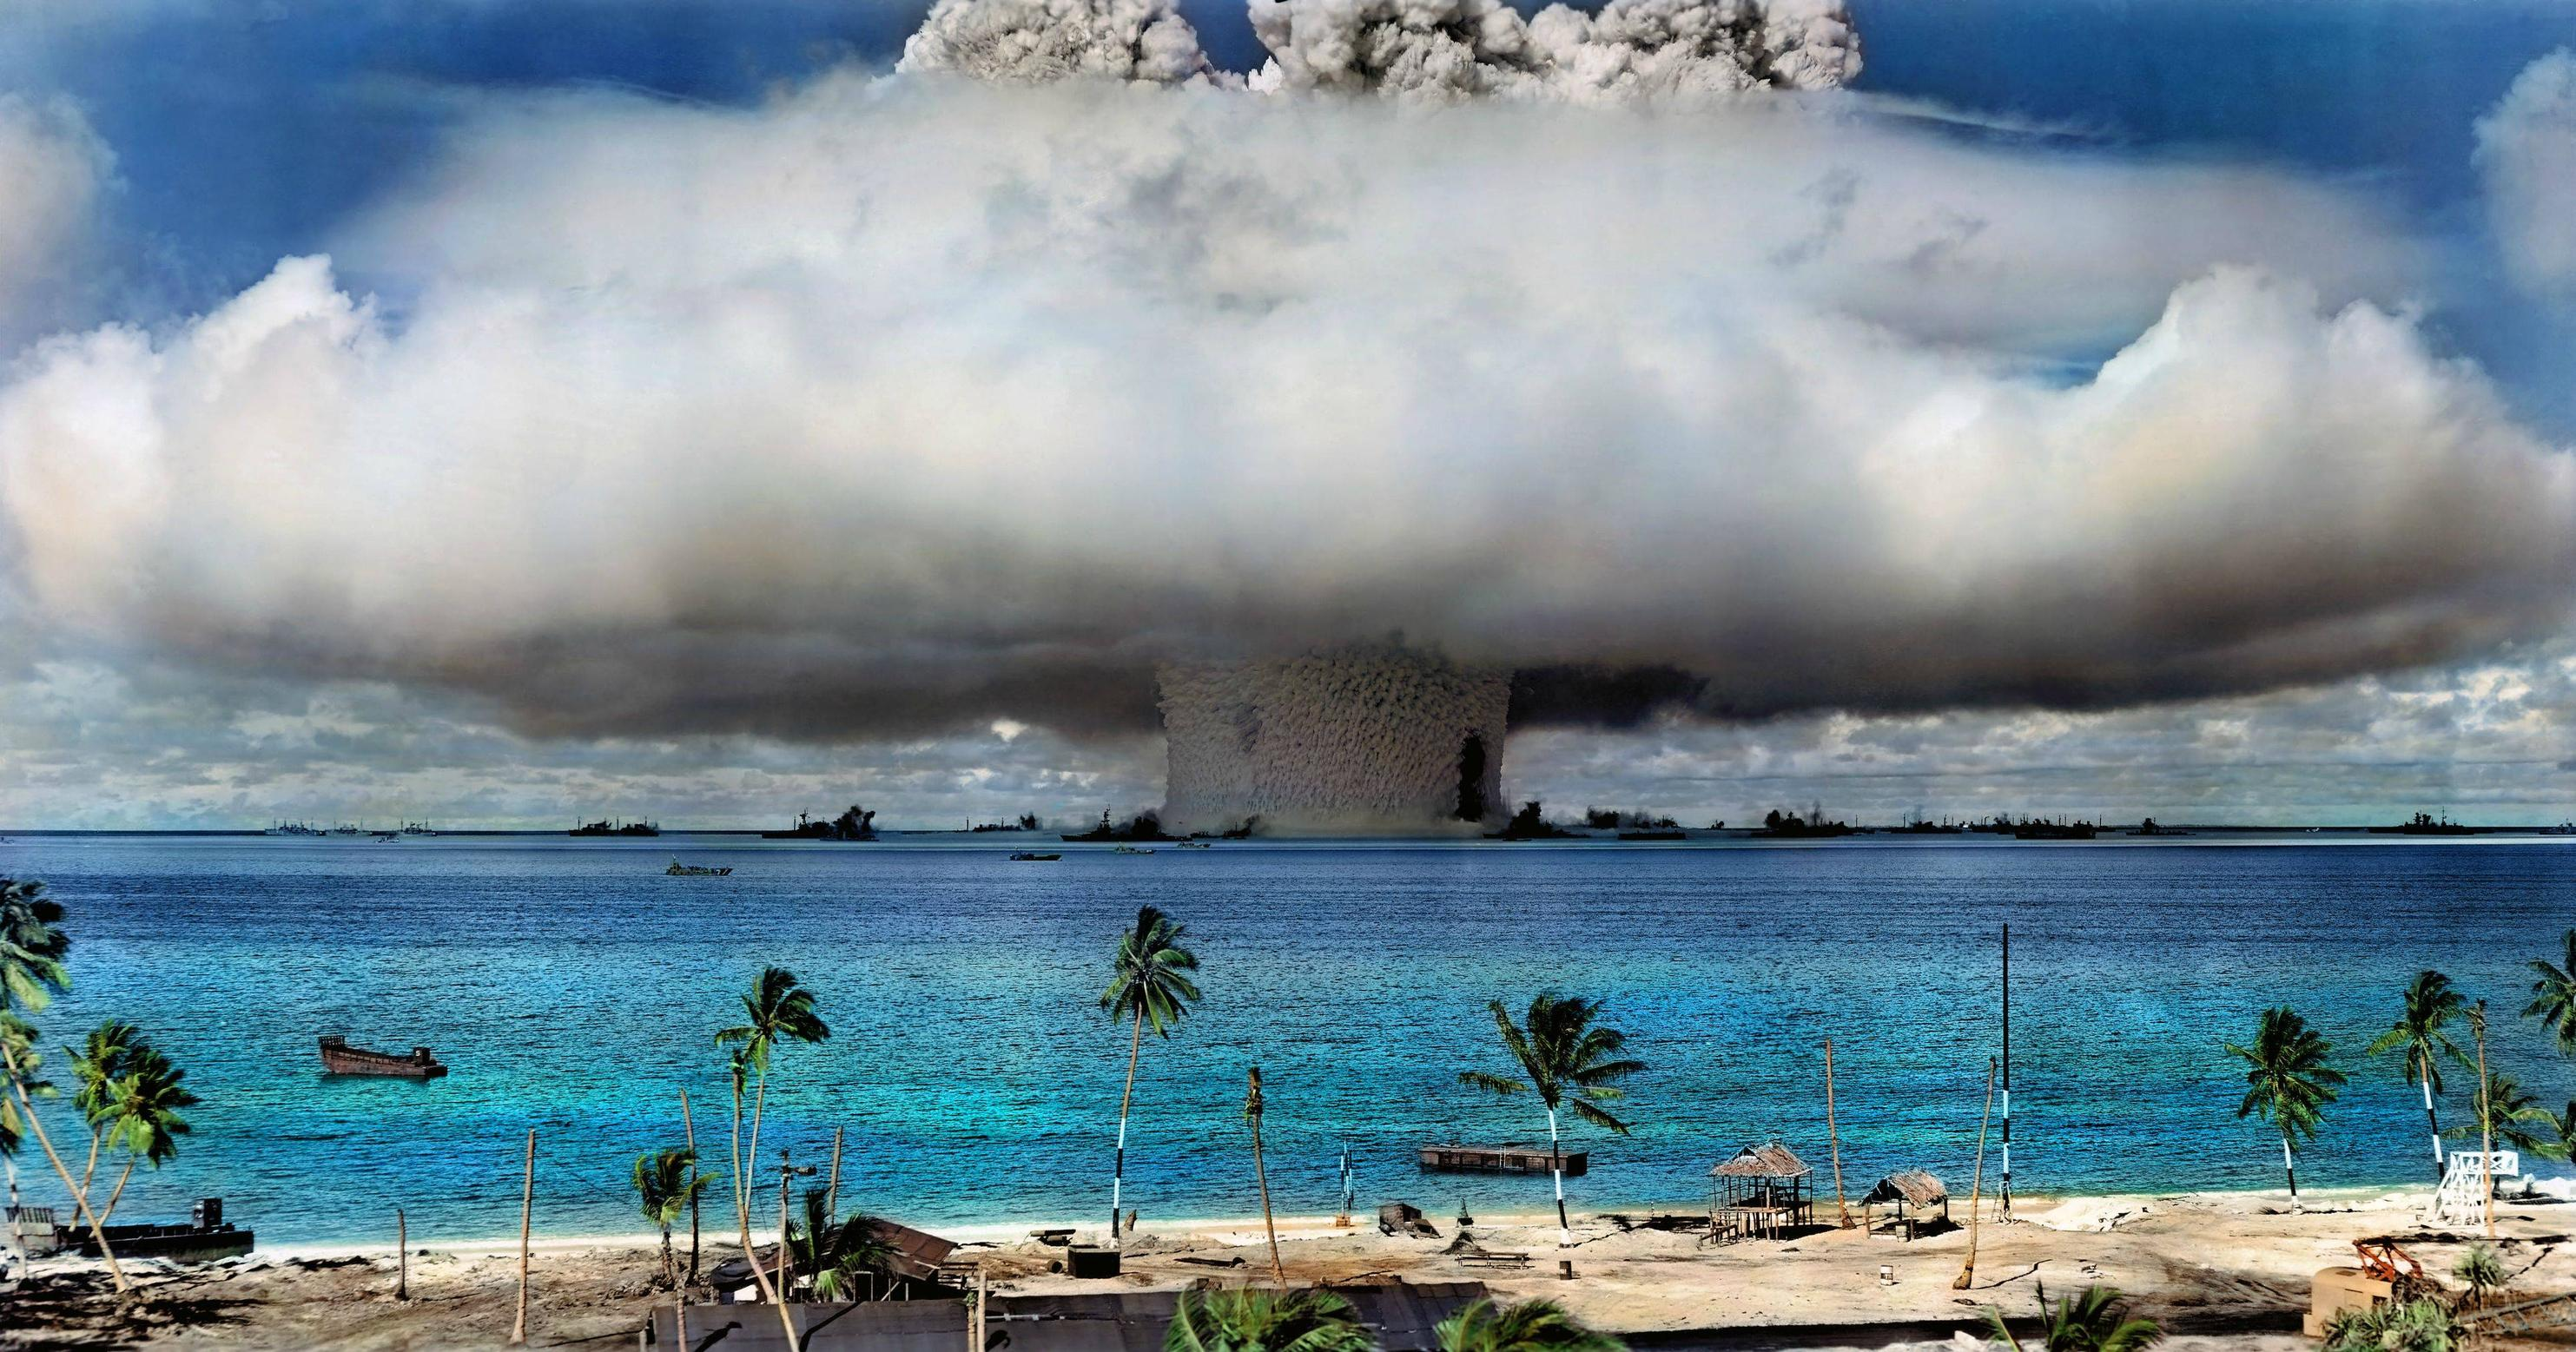 A nuclear test on Bikini Atoll